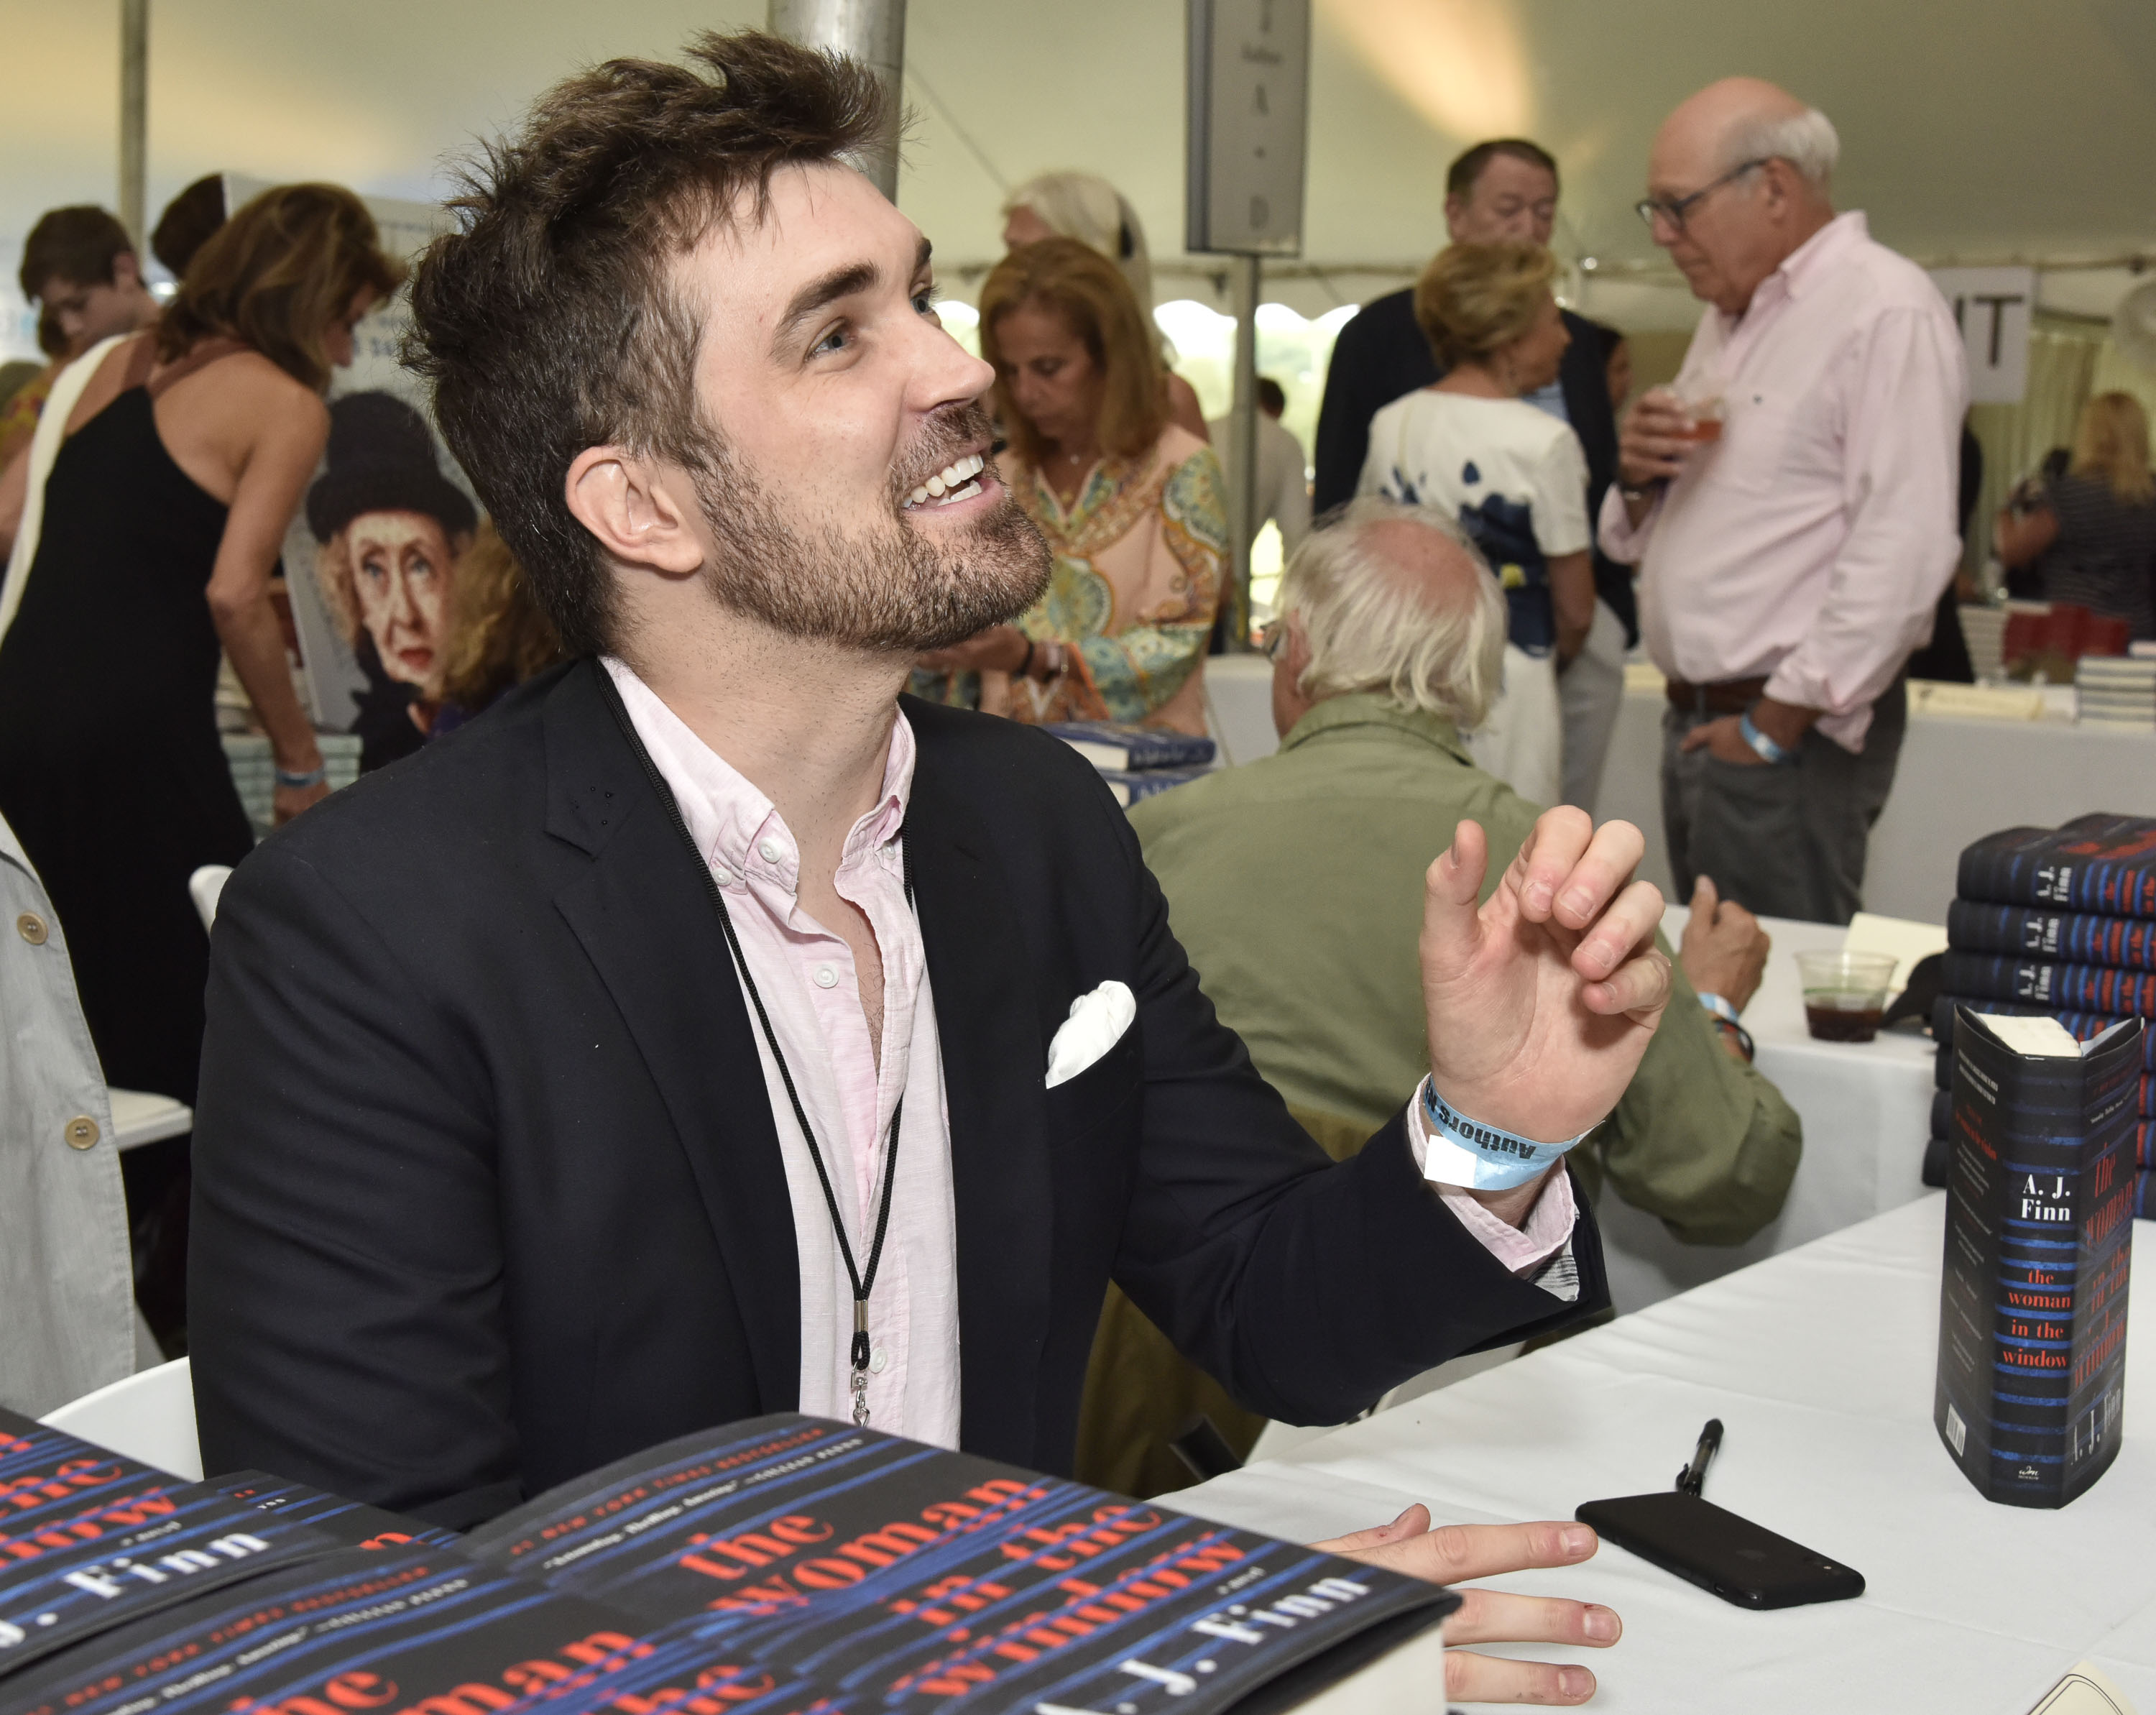 A.J. Finn (Dan Mallory) attends Authors Night at East Hampton Library on August 11, 2018 in East Hampton, New York.